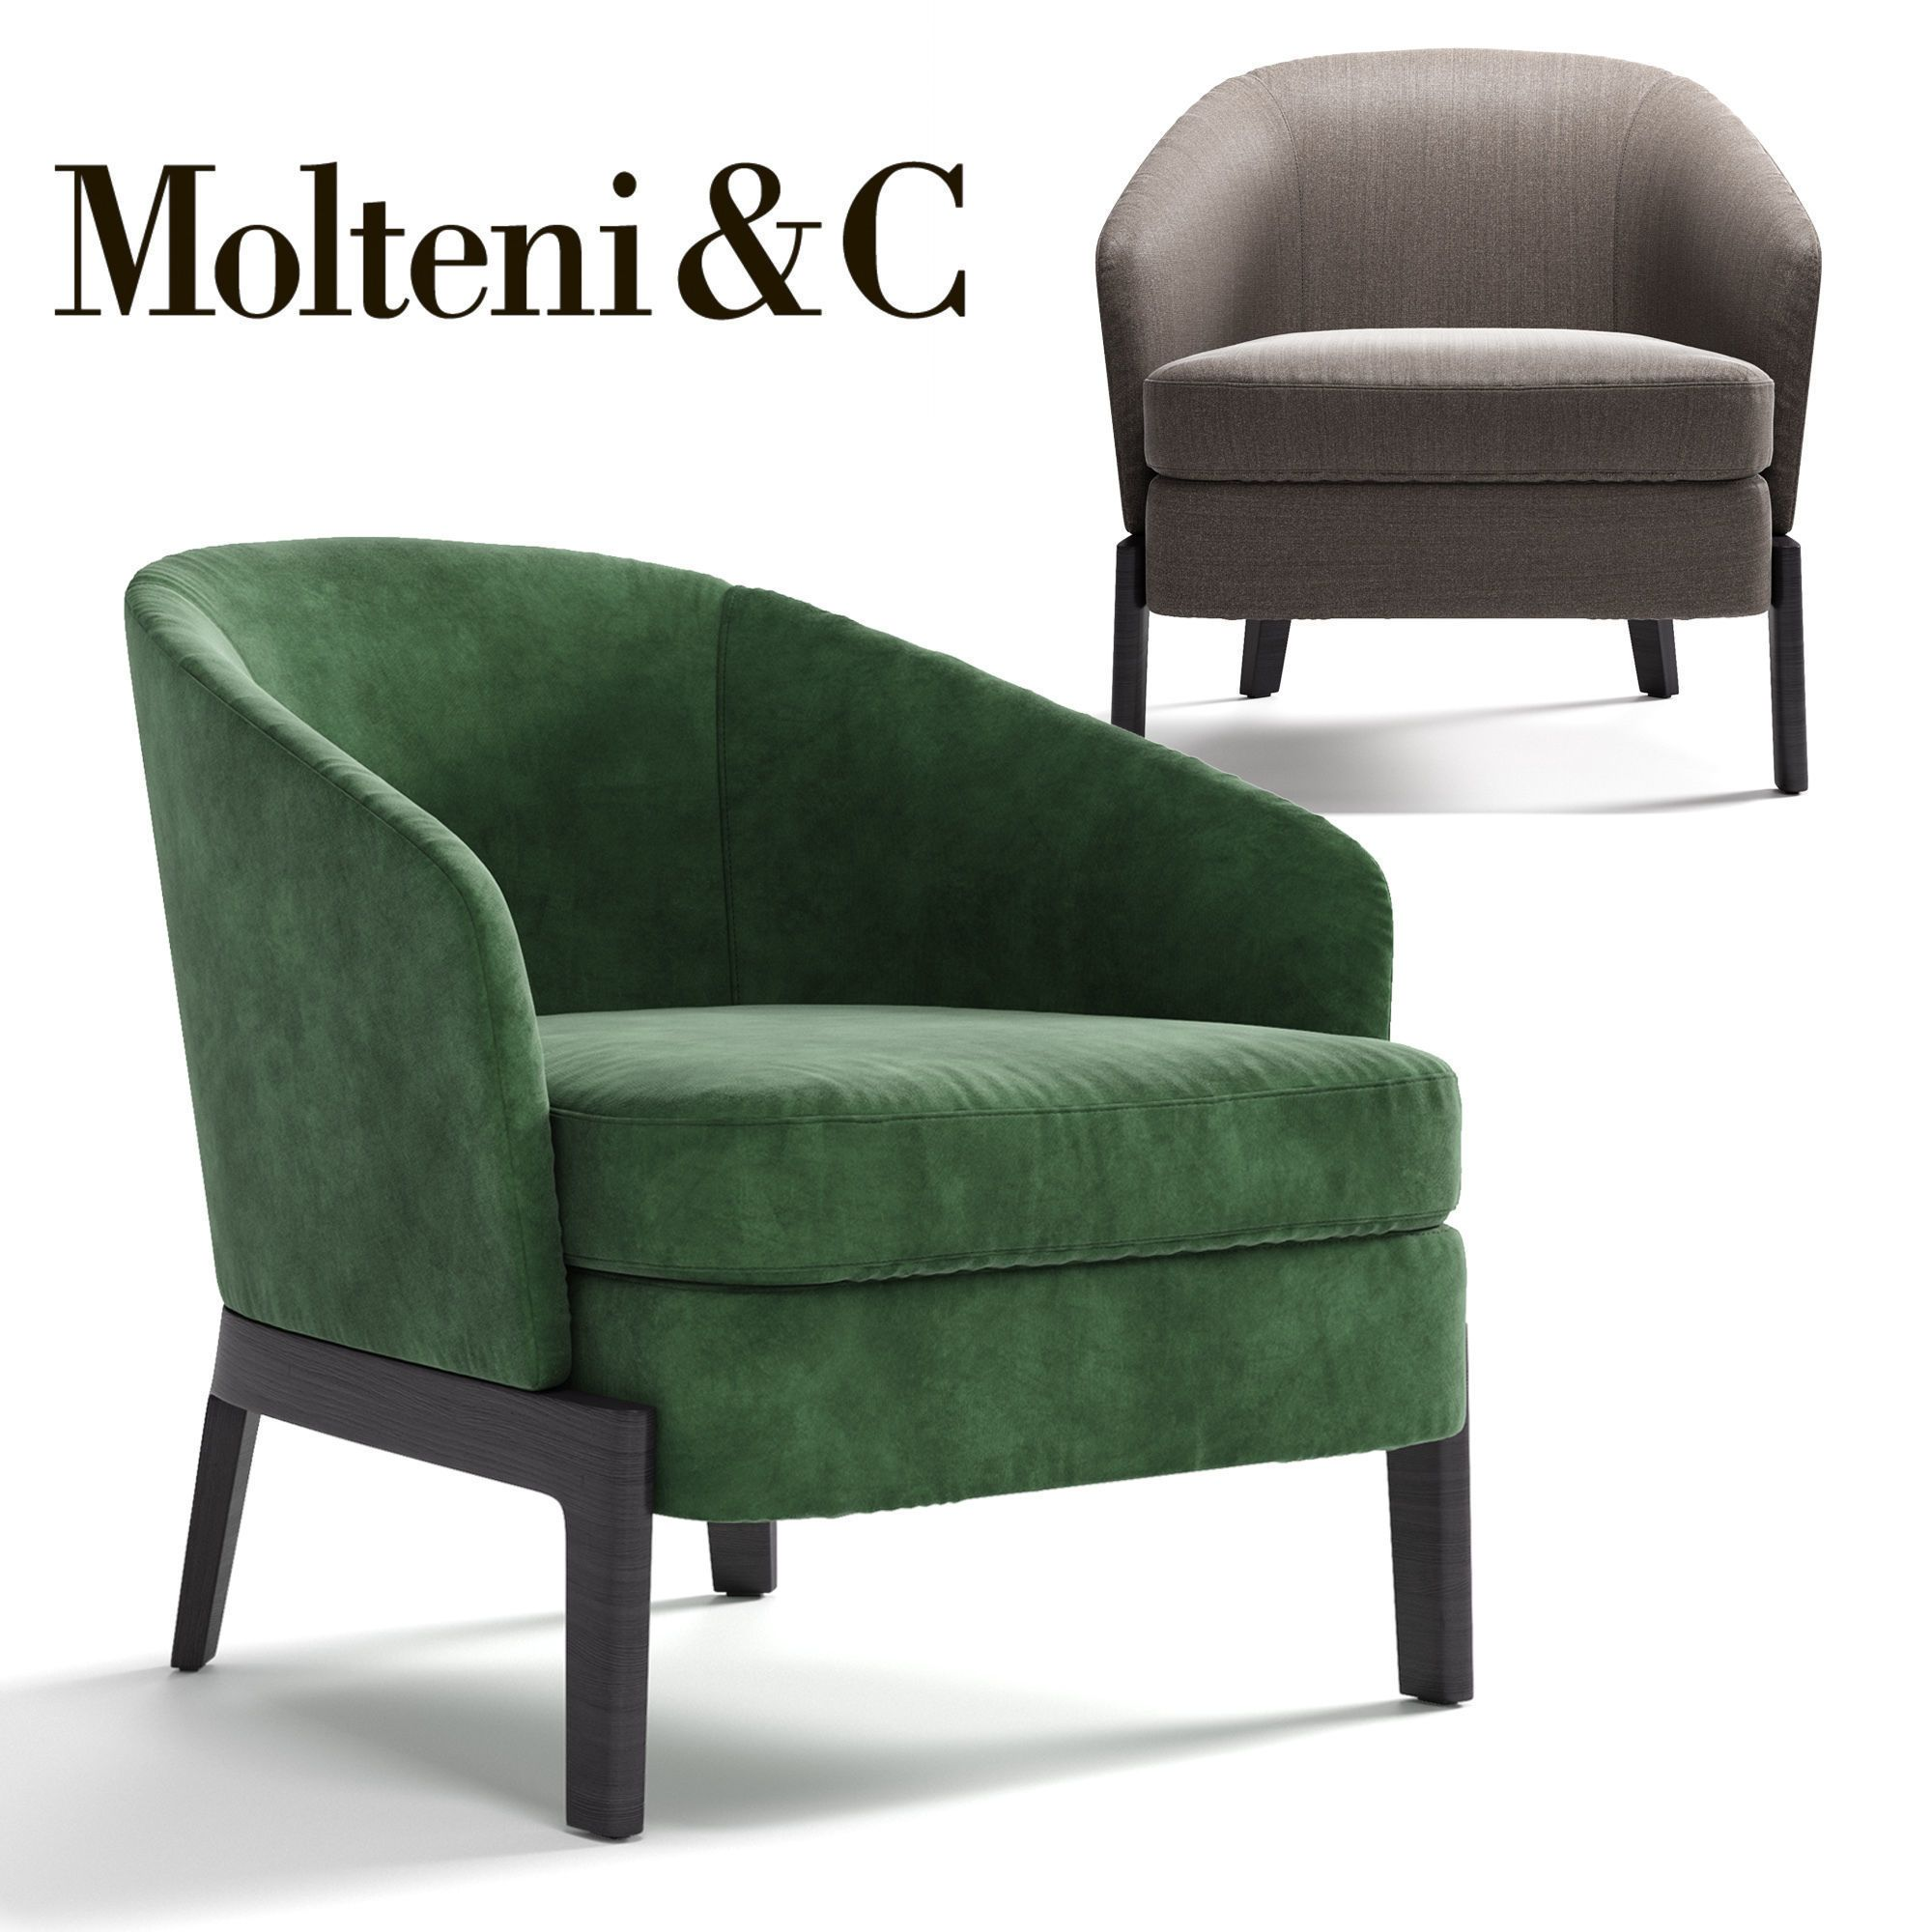 Molteni Chelsea Armchair 3d Model Armchair Furniture Furniture Living Room Sofa Design